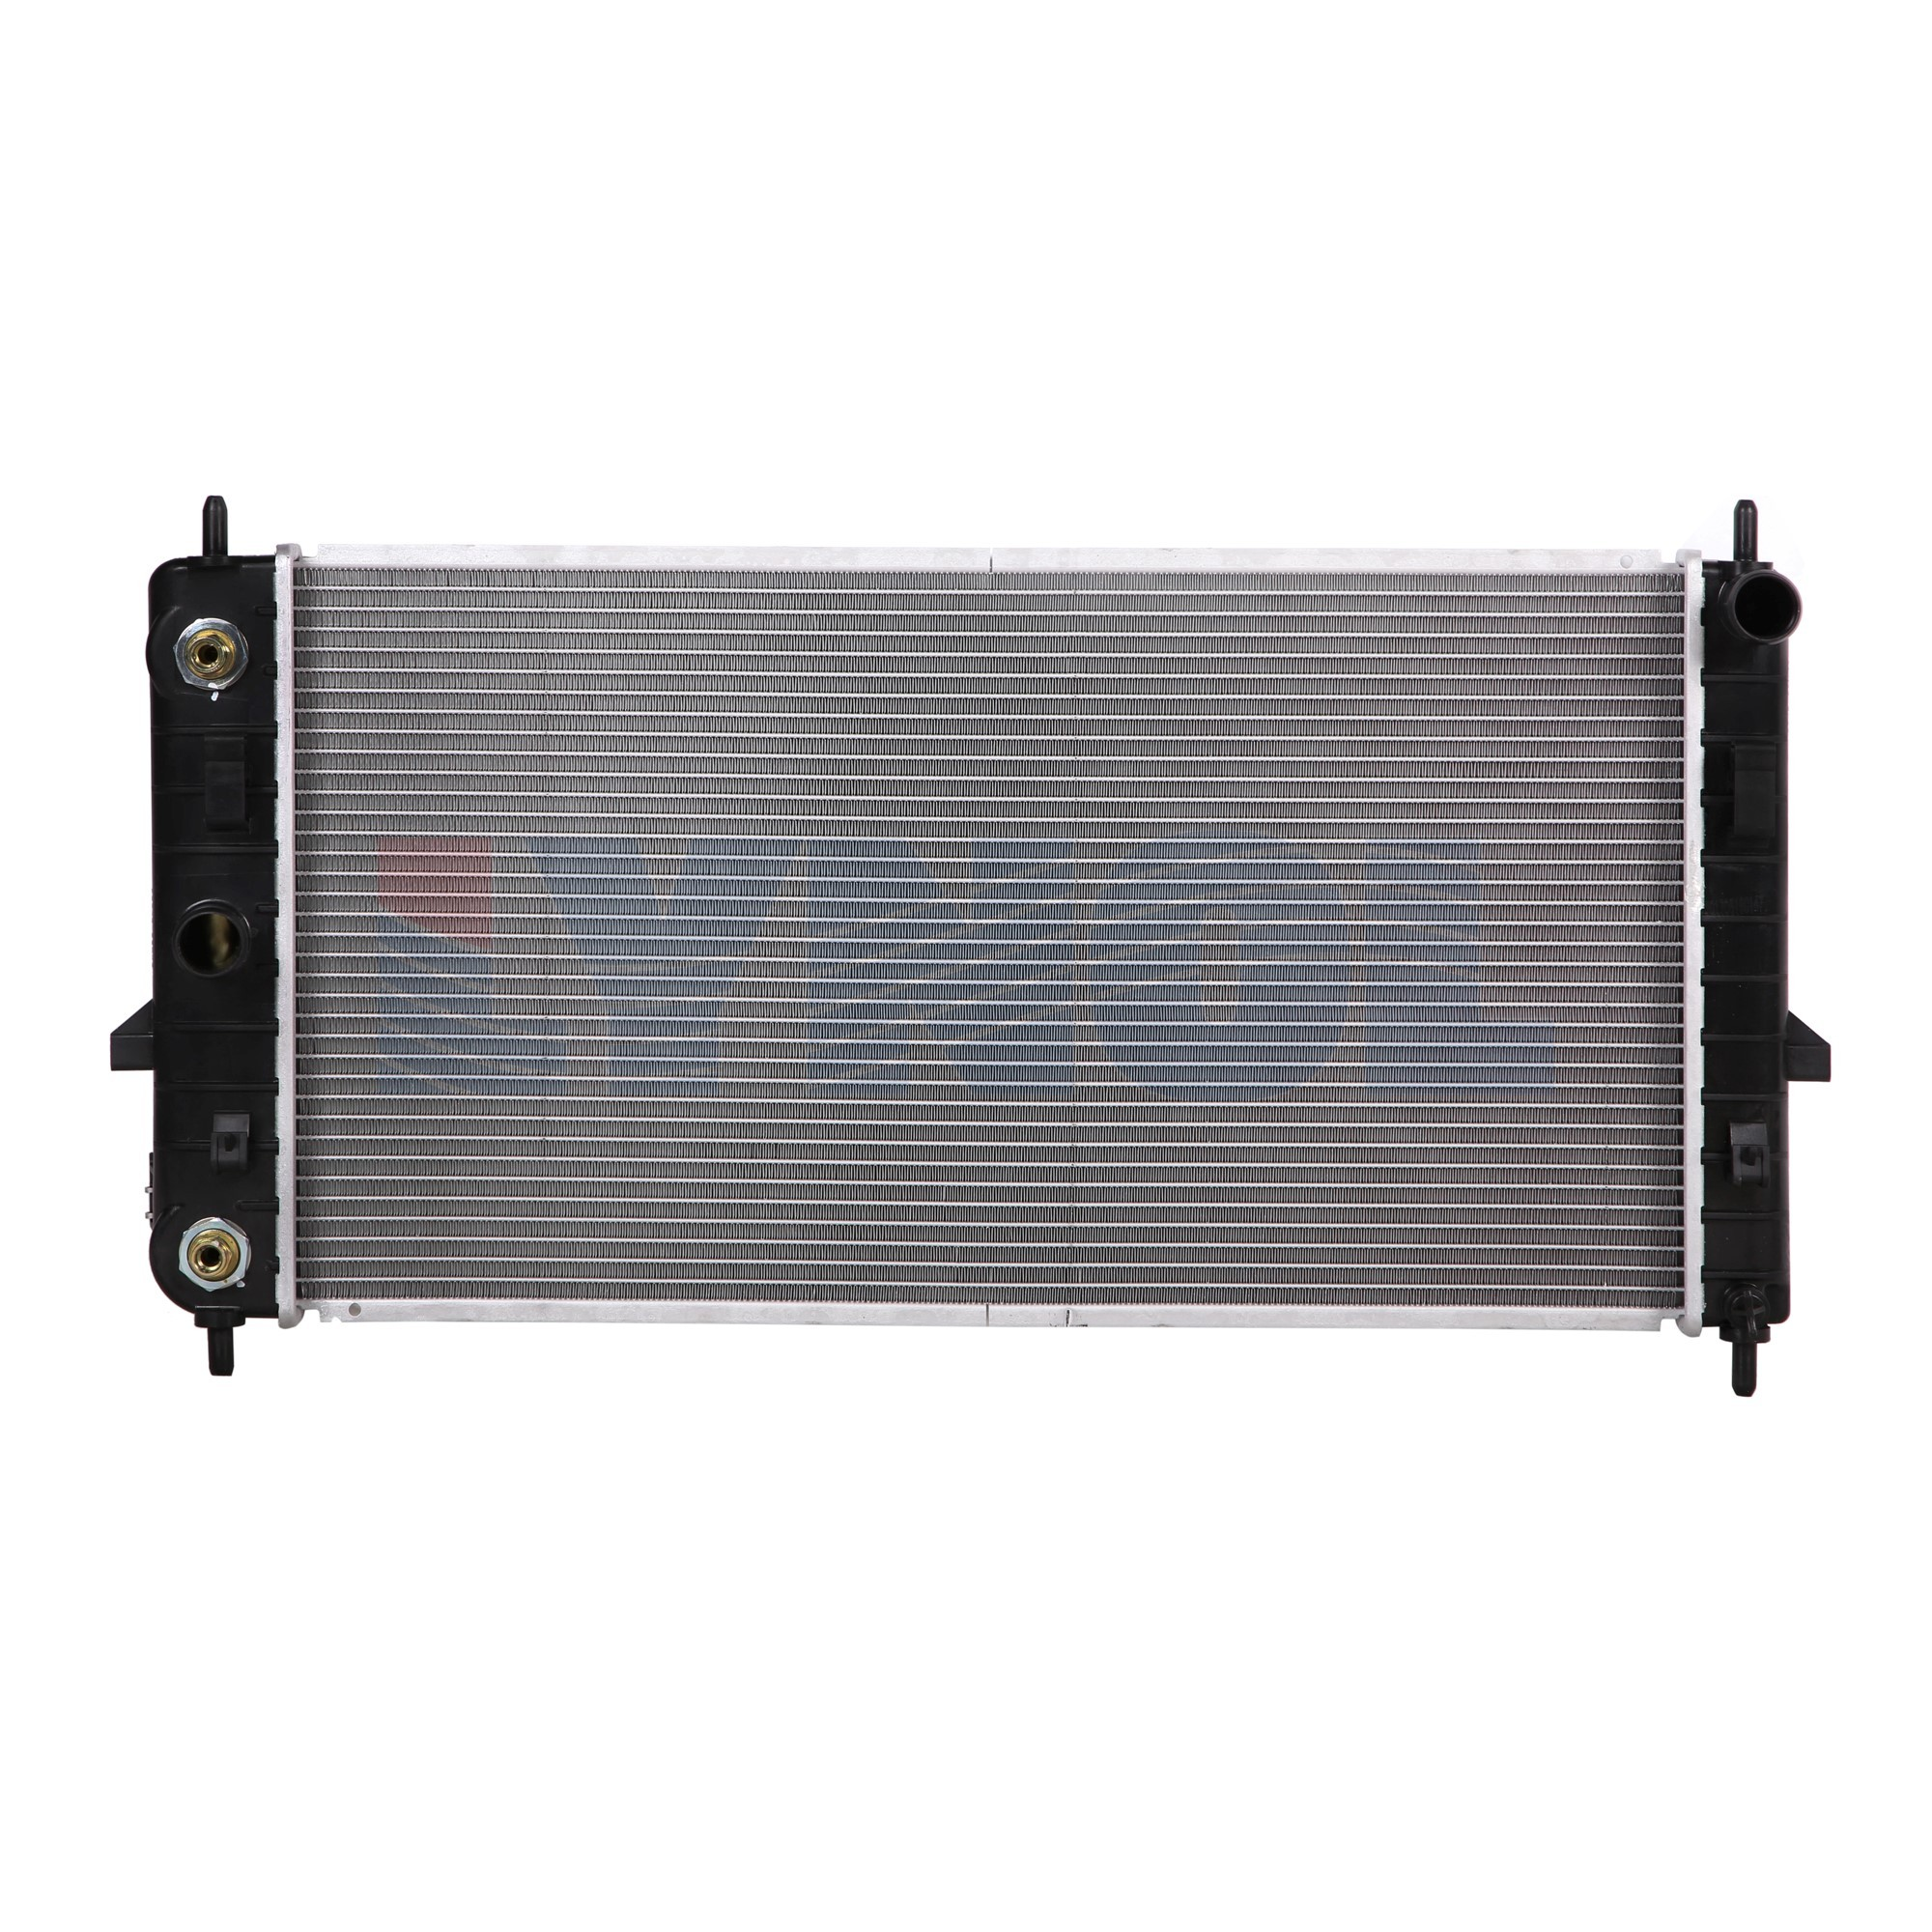 LR2608 - RADIATOR  - 05-07 Chevrolet Cobalt / Saturn Ion 2.2/2.4 (w/ QC can use for 2775) 13042